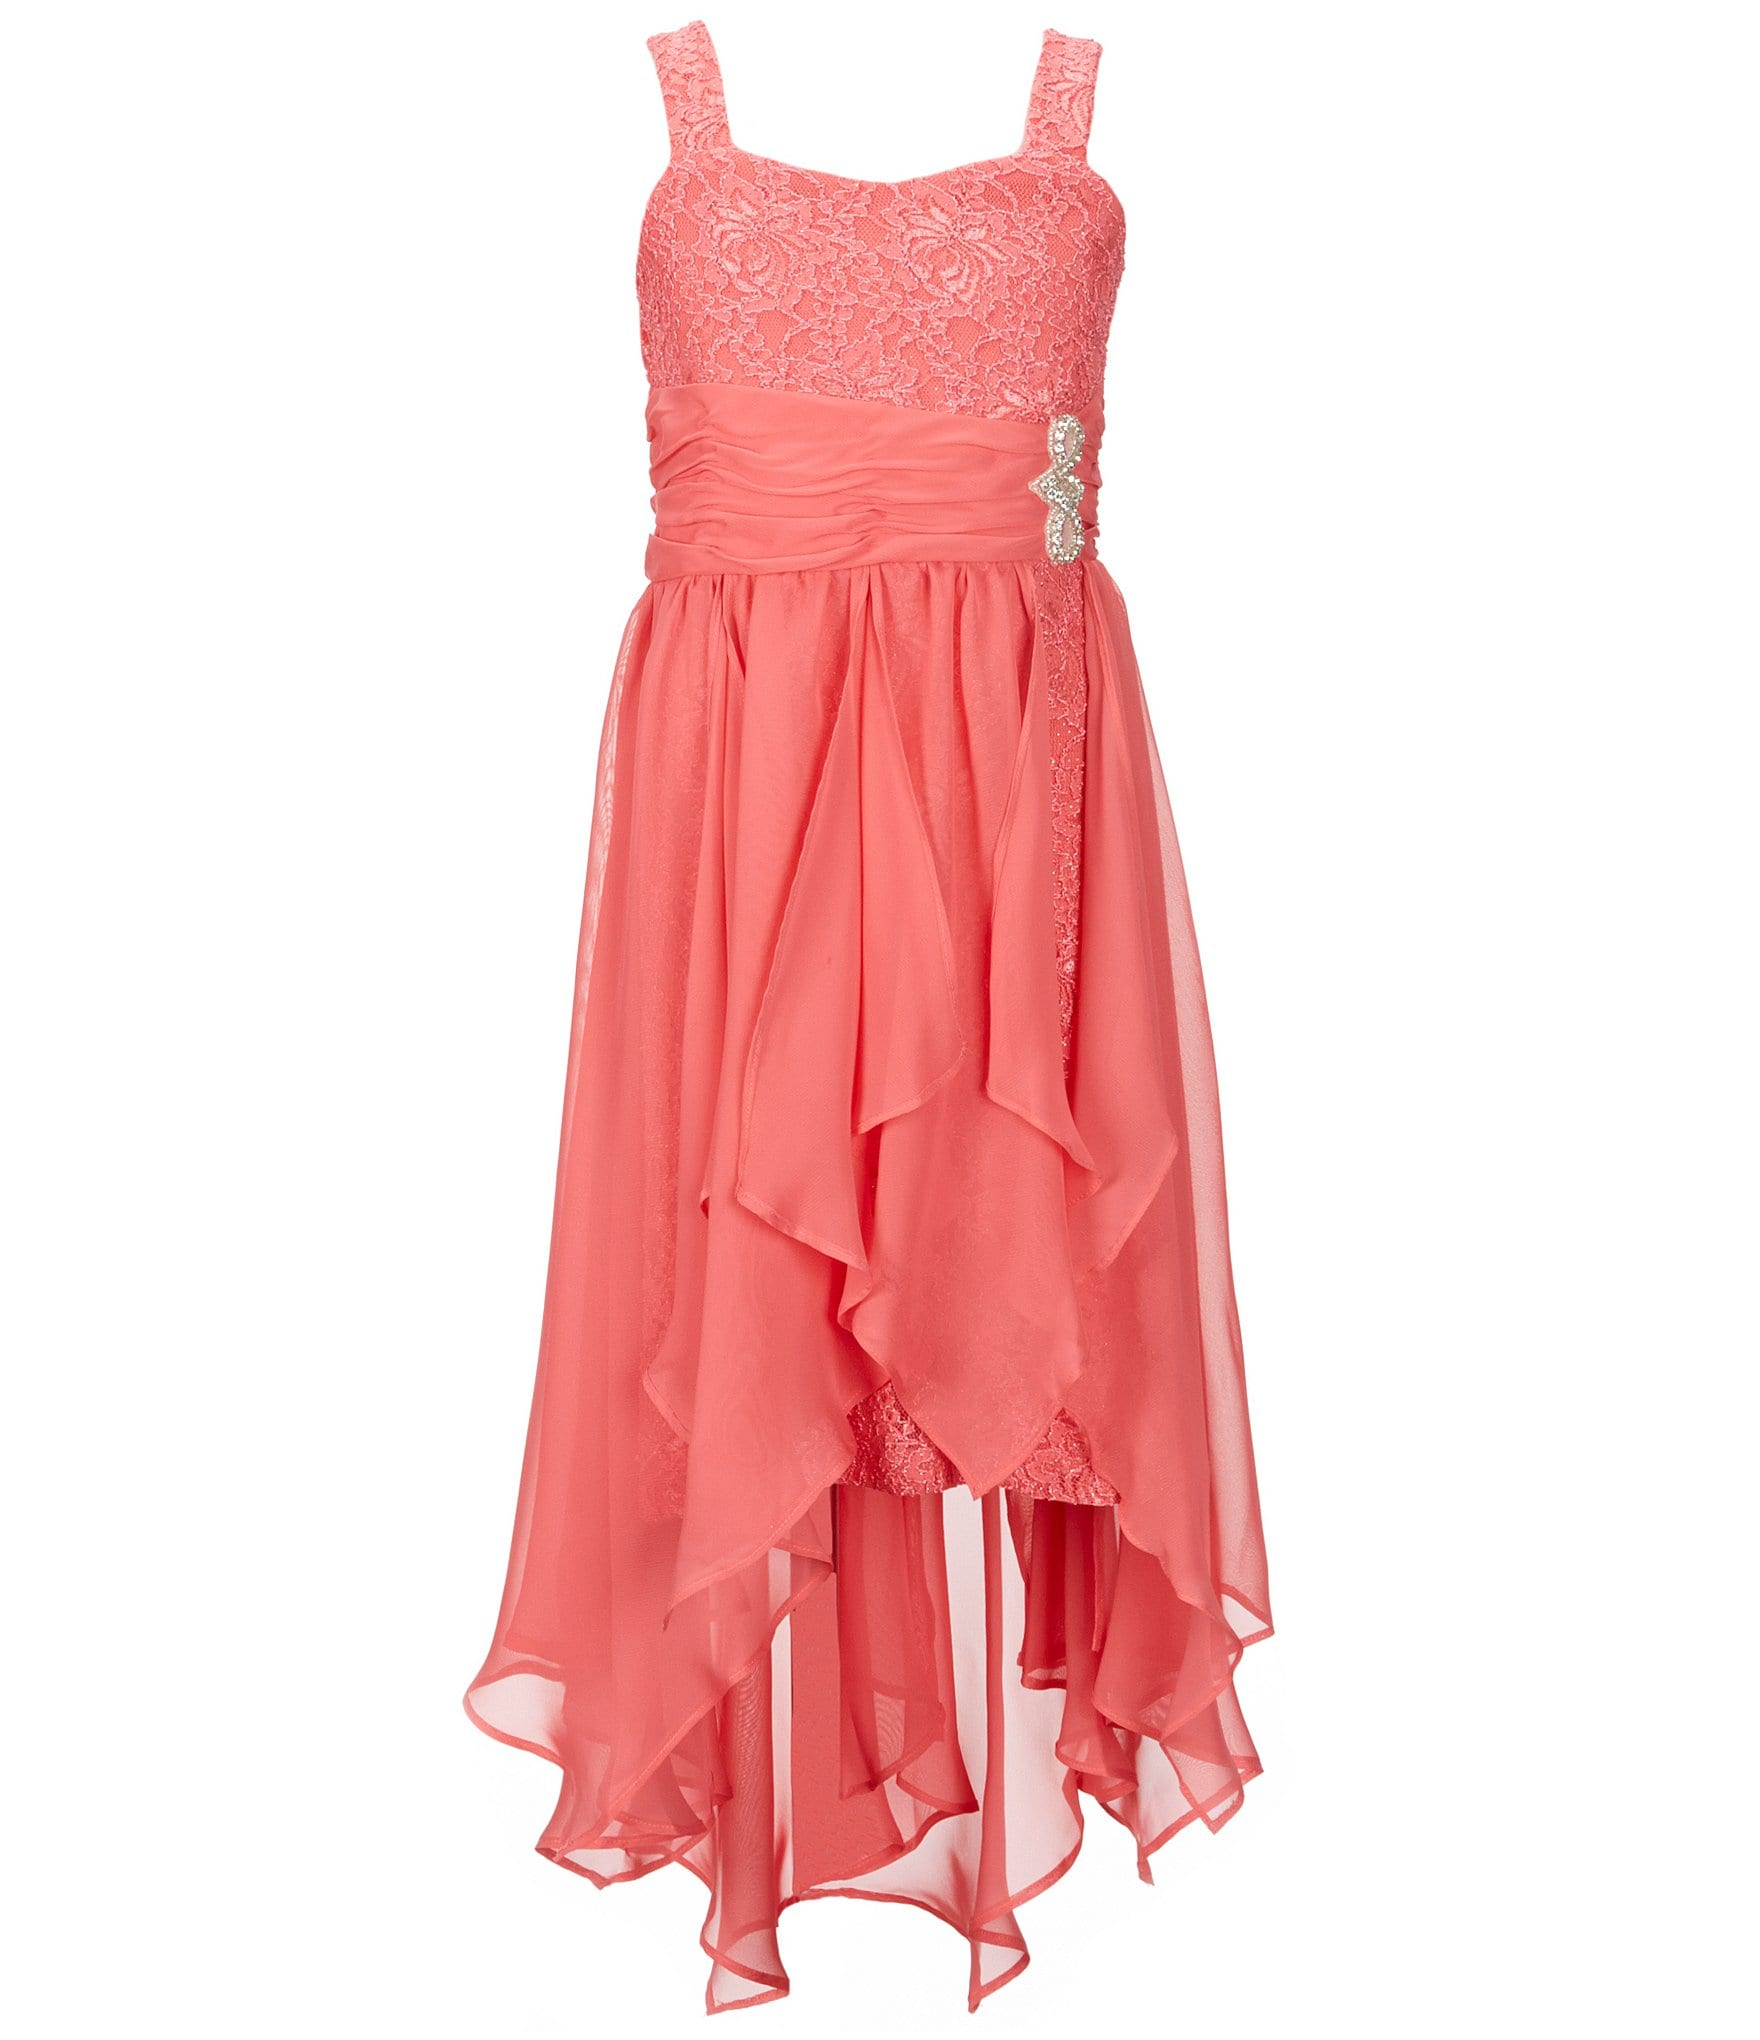 Find a great selection of fashion and gifts for tween girls at getson.ga Shop for tweens' clothing, shoes, accessories and more. Free shipping and returns.